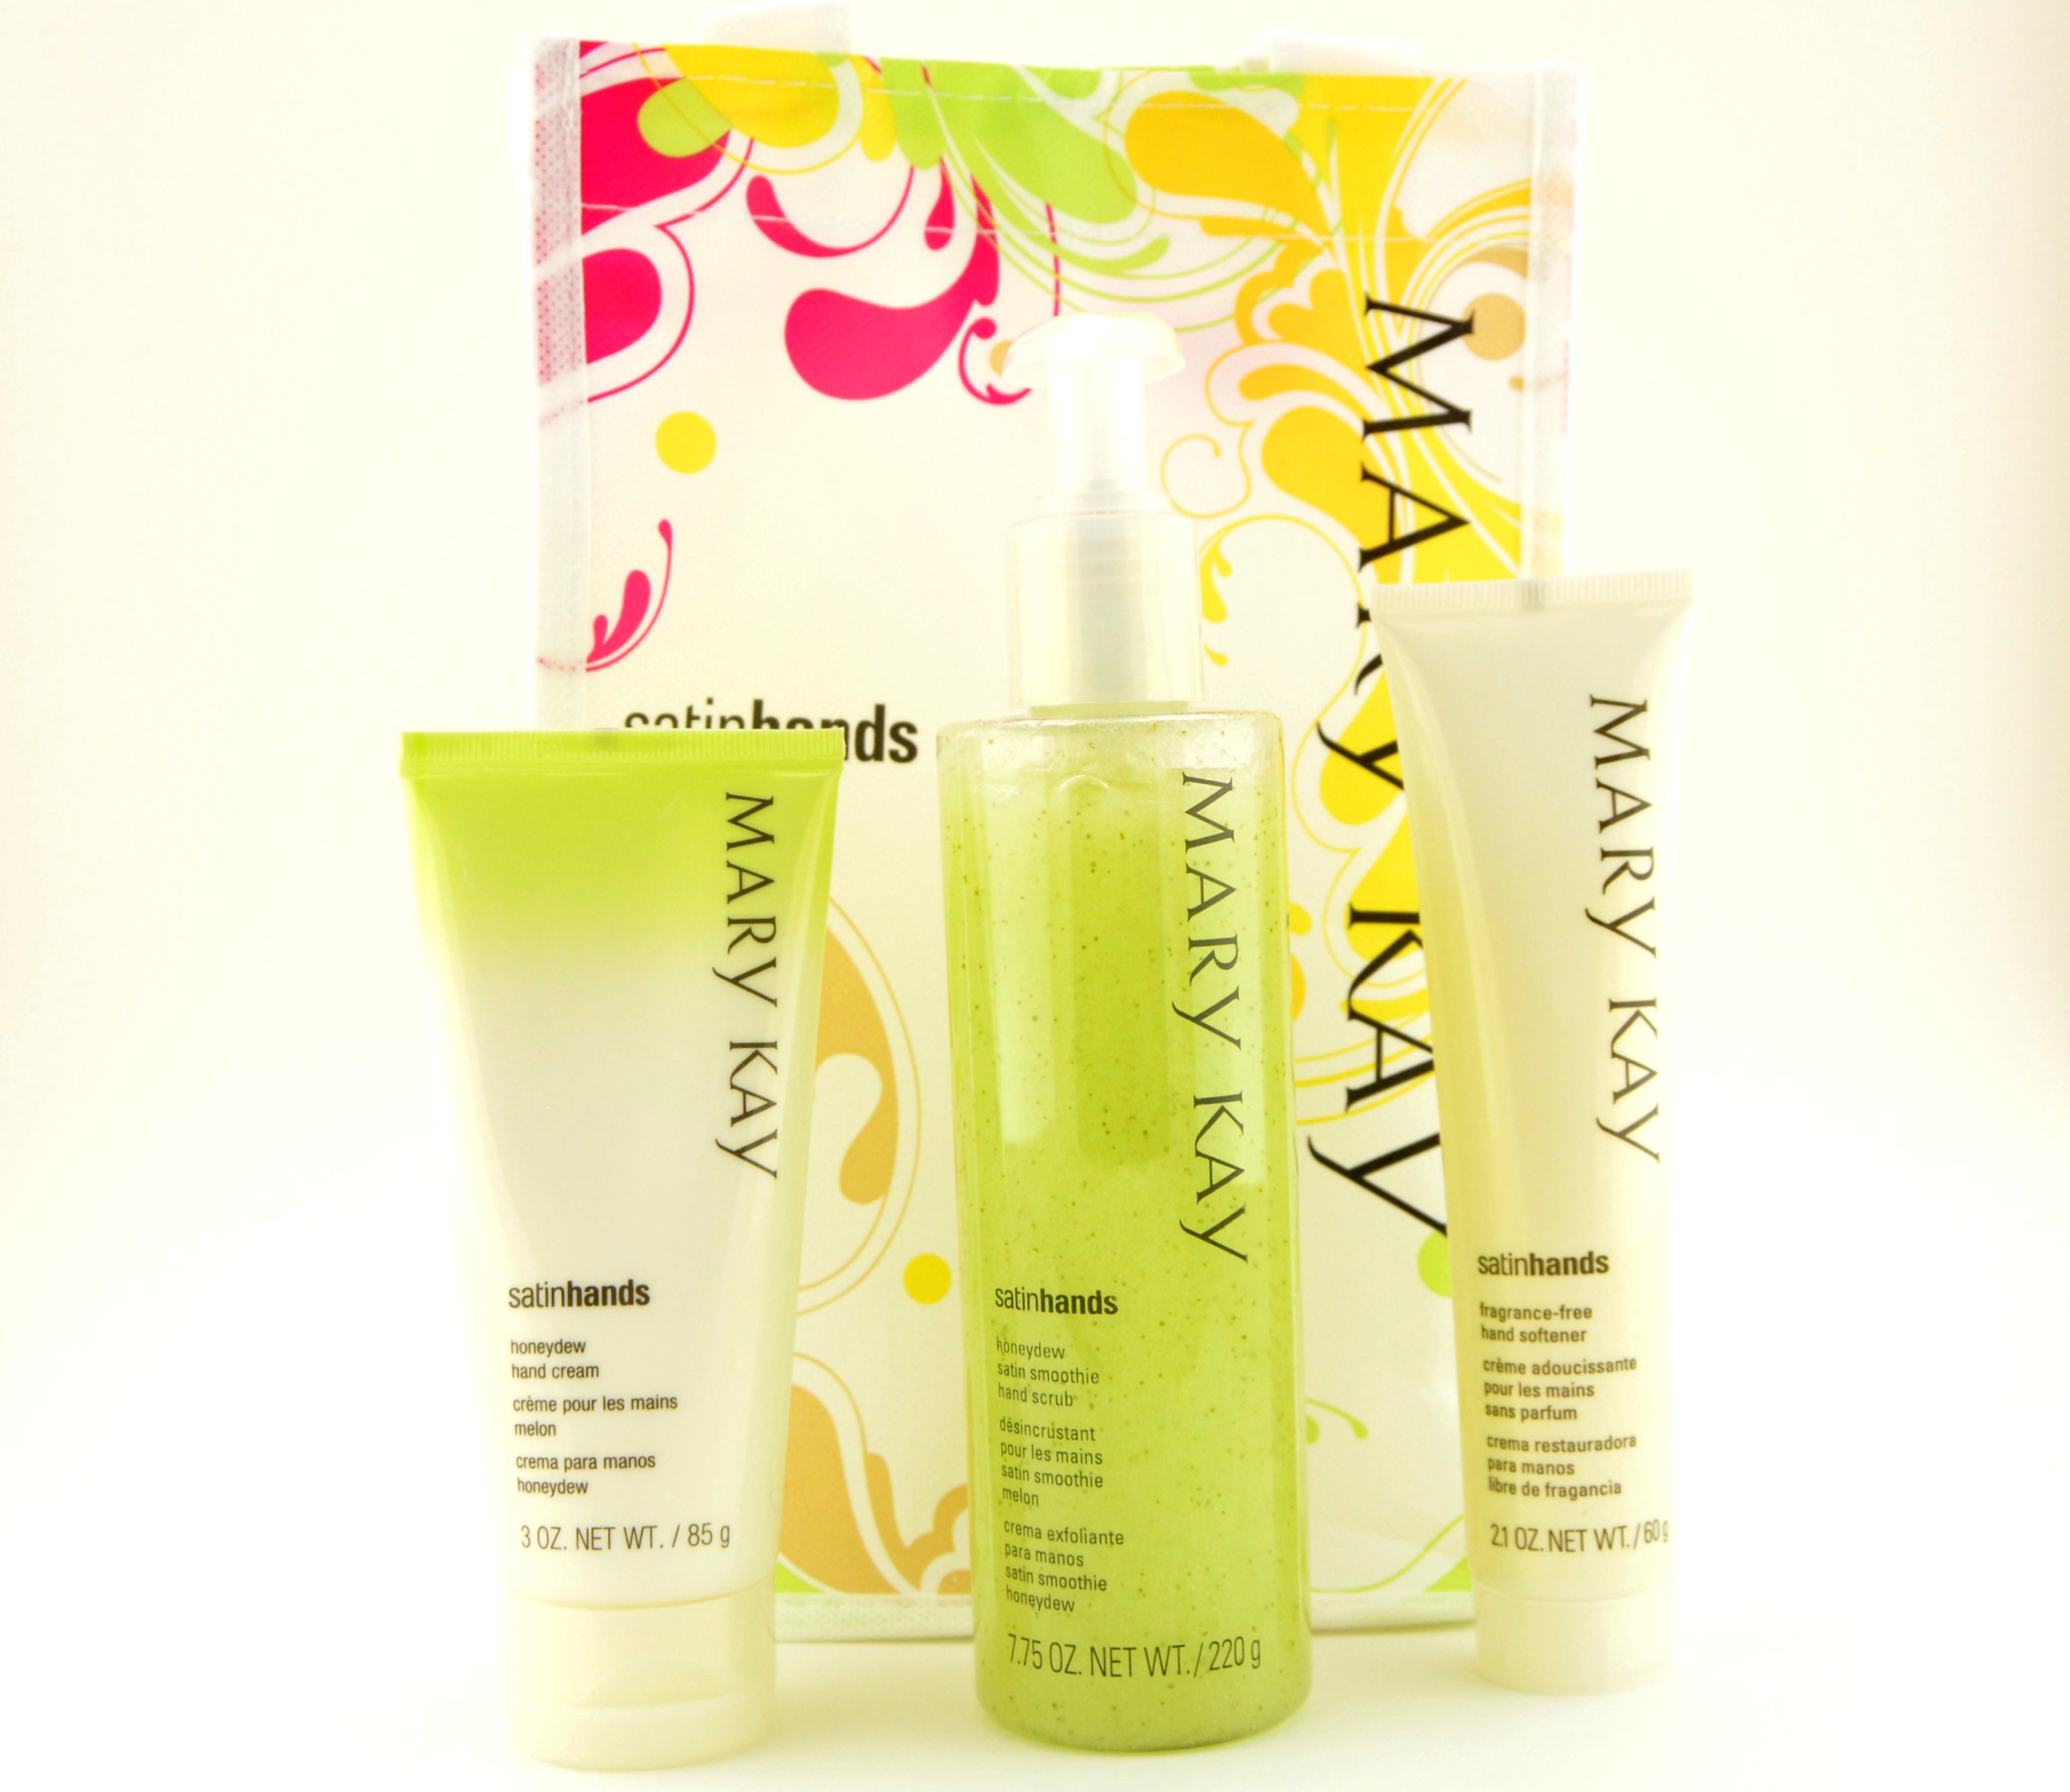 Mary Kay Honeydew Satin Hand Pampering Set Review